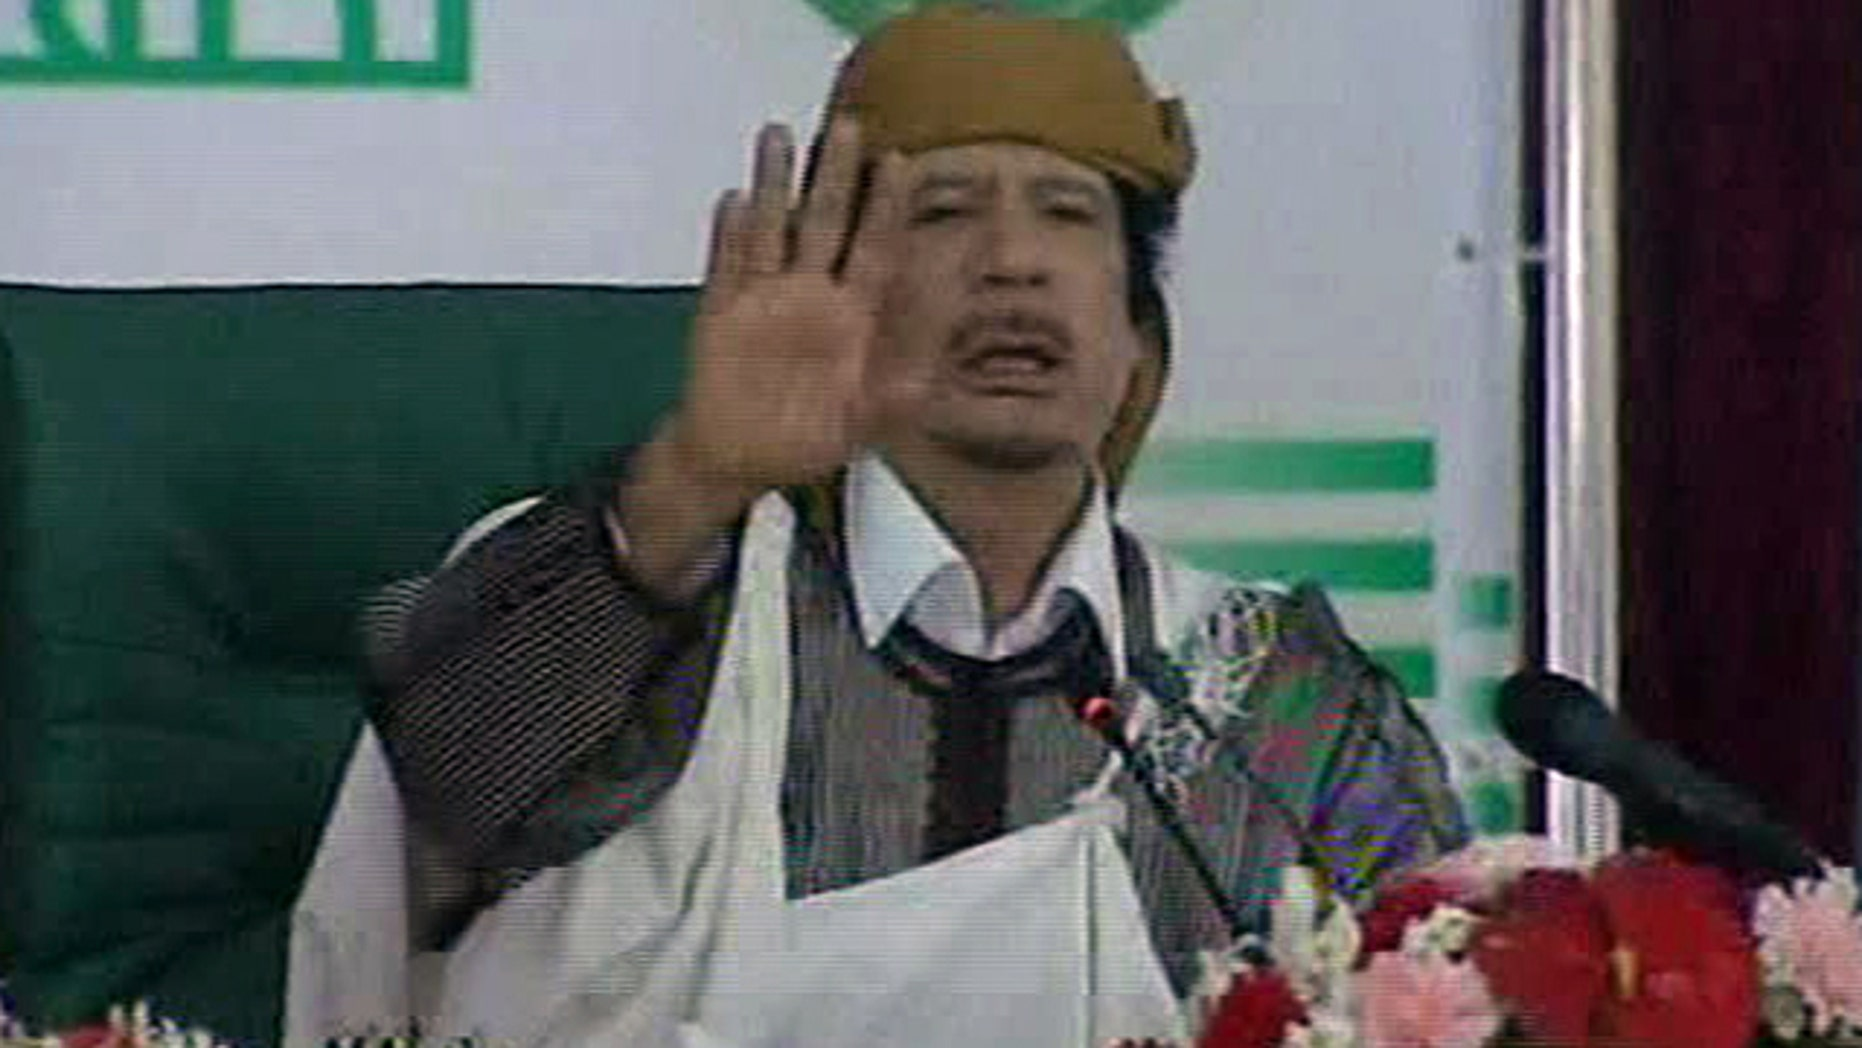 March 2: This video image taken from Libyan state television broadcast shows Libyan leader Muammar al-Qaddafi addressing supporters and journalists in Tripoli, Libya.